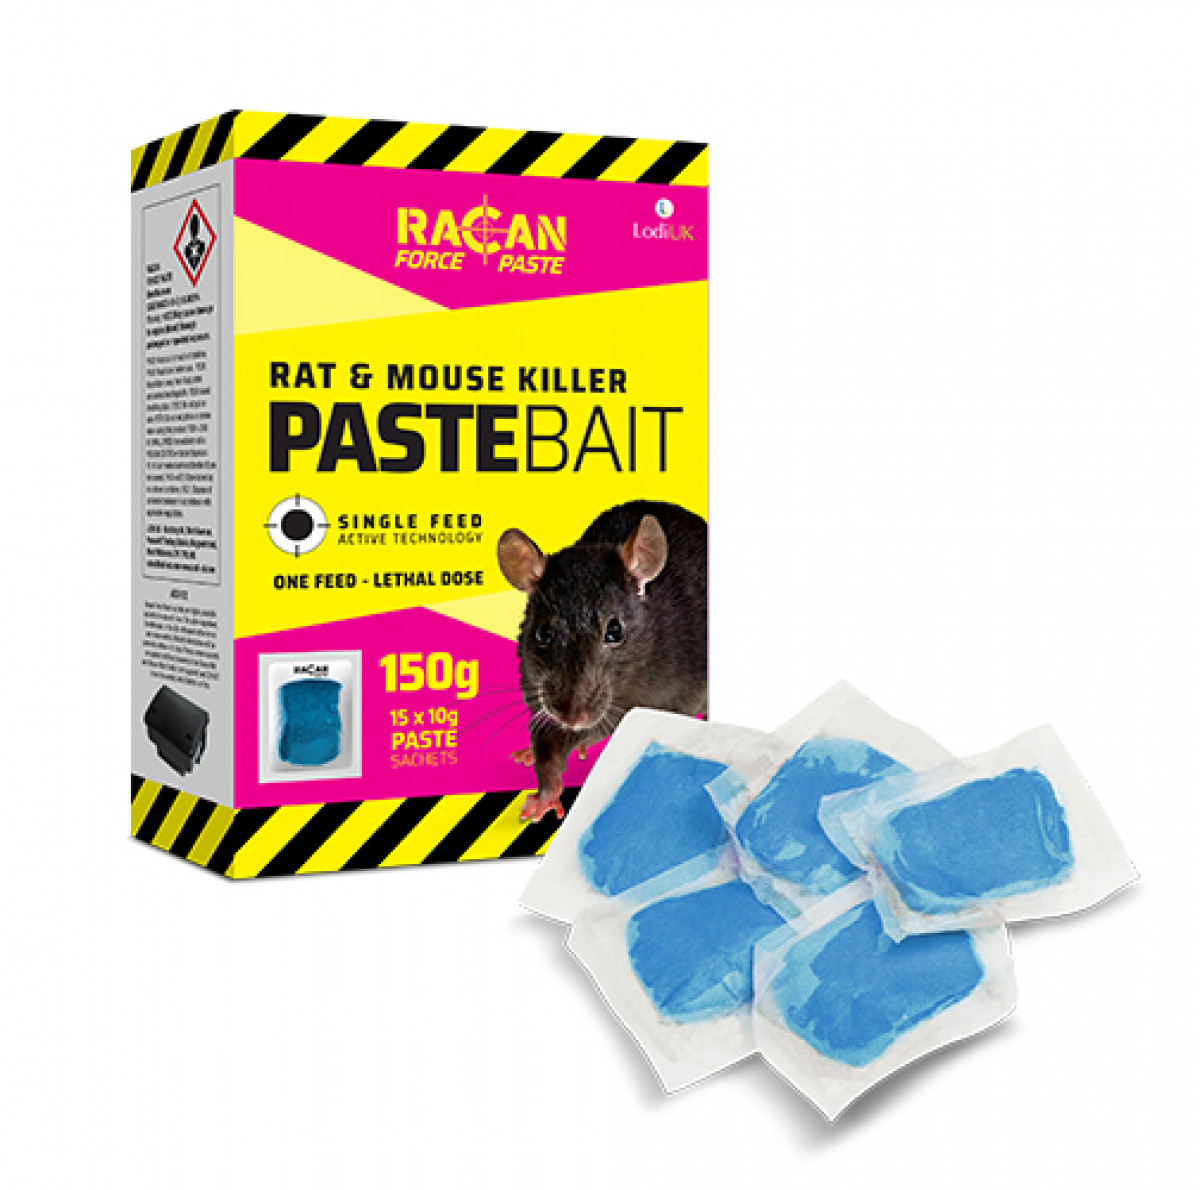 Racan Force Paste 150g Paste Sachets